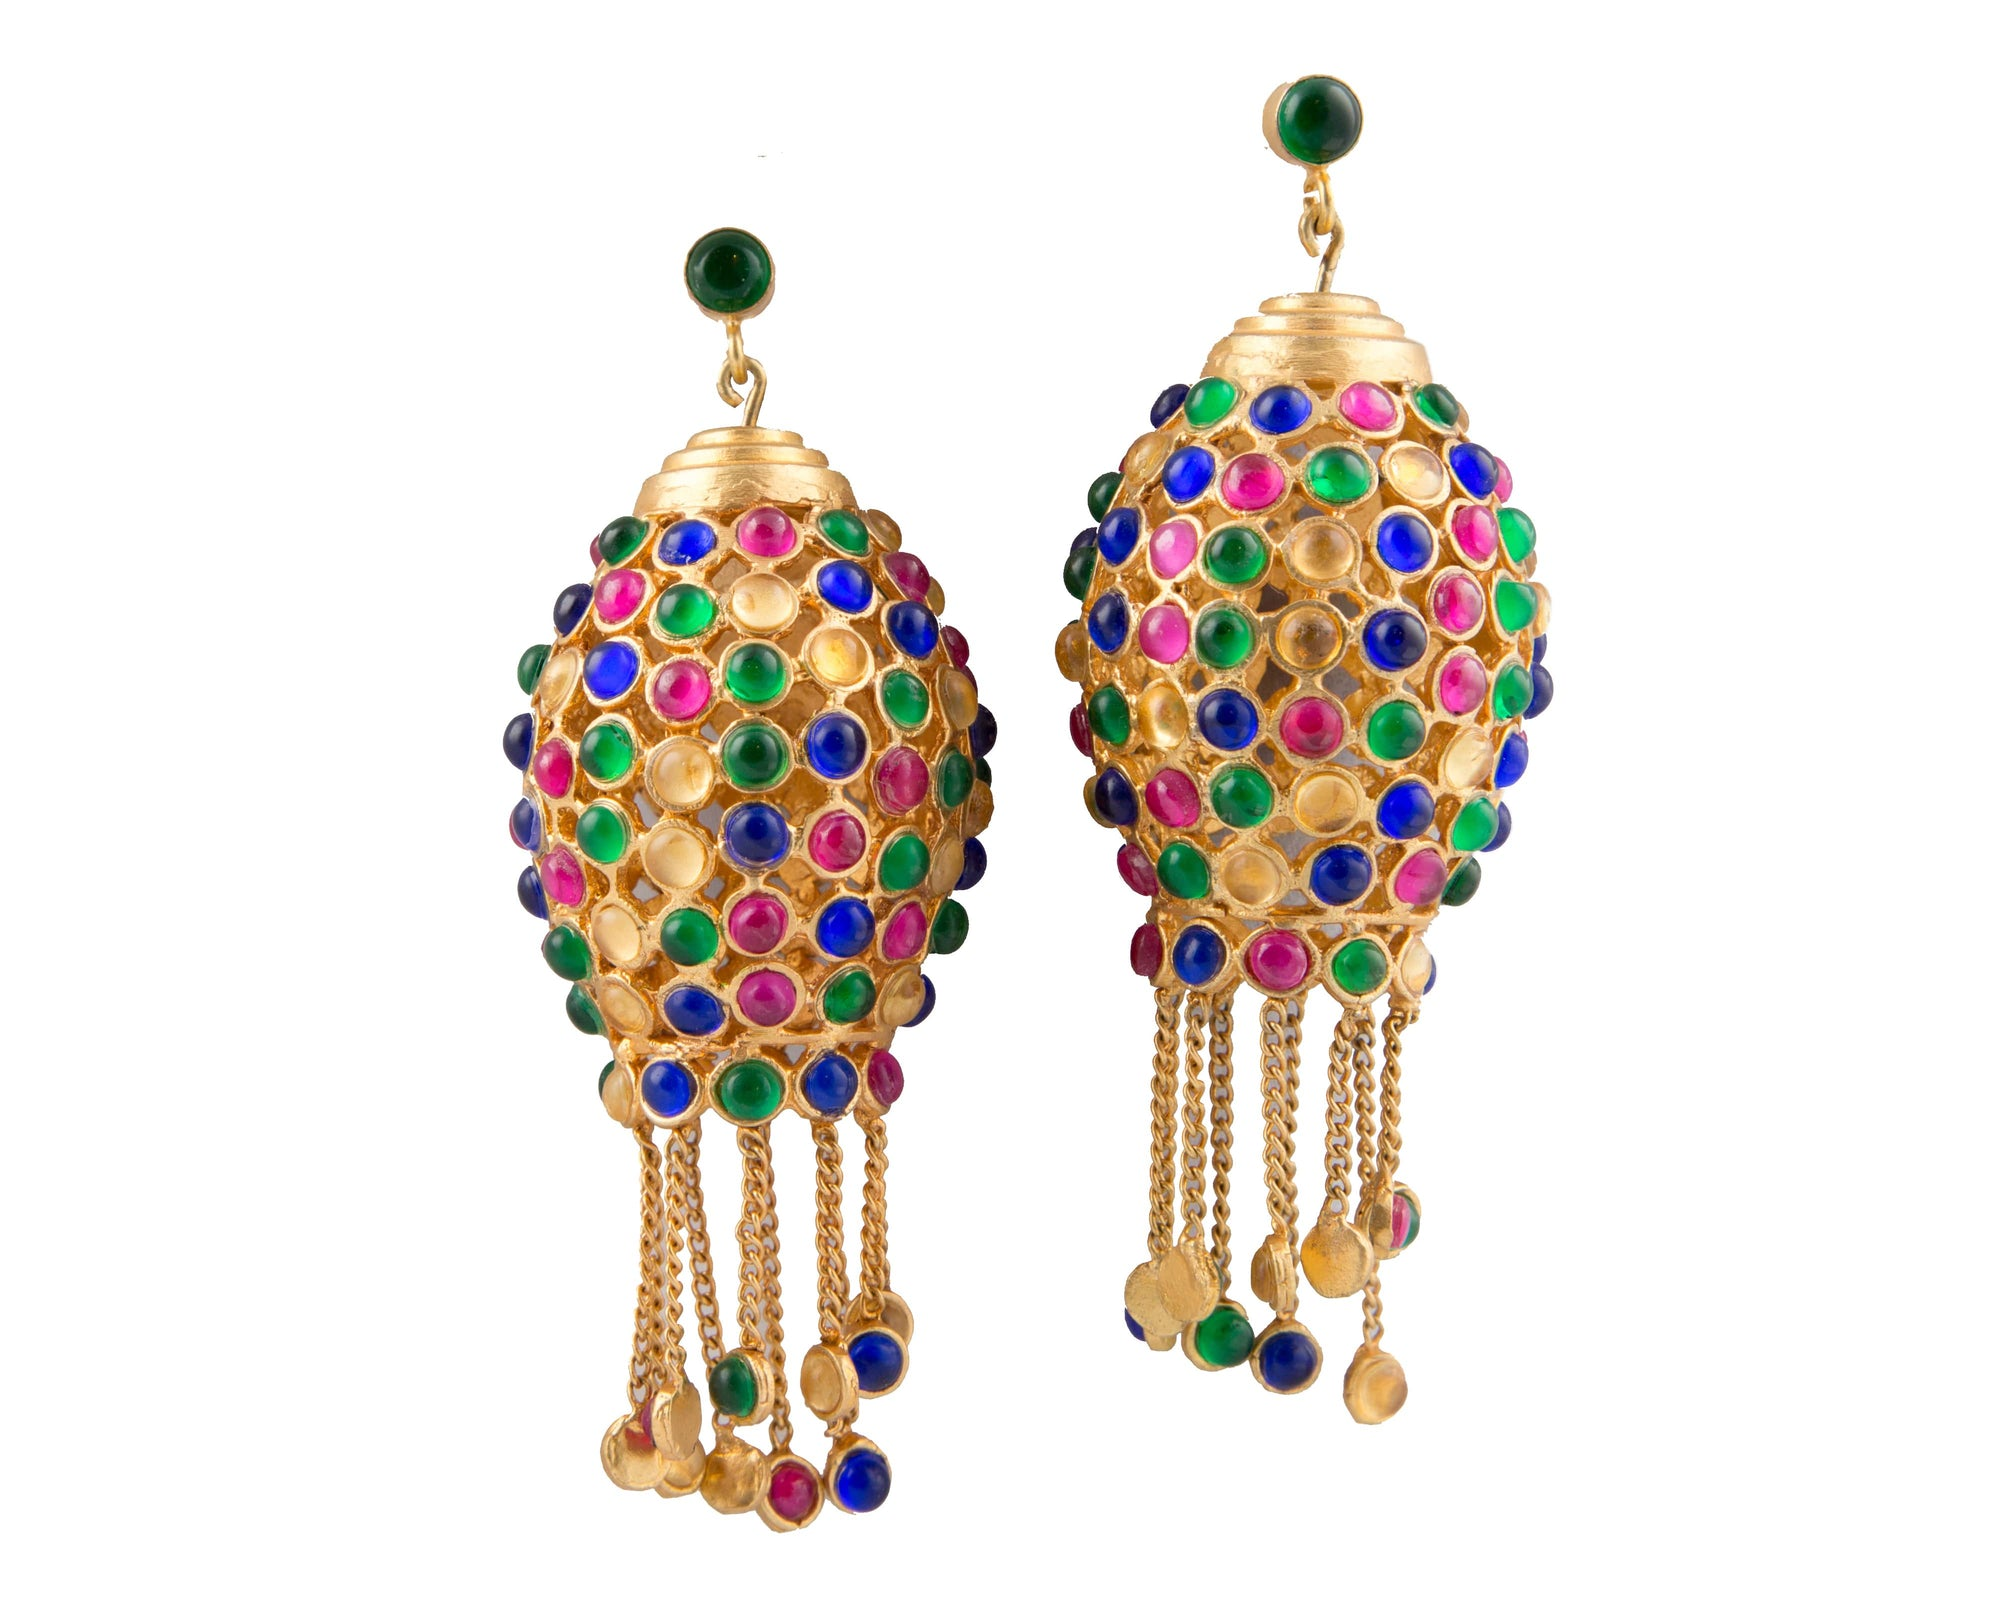 Multicolour semi-precious stones moroccan chandelier earrings